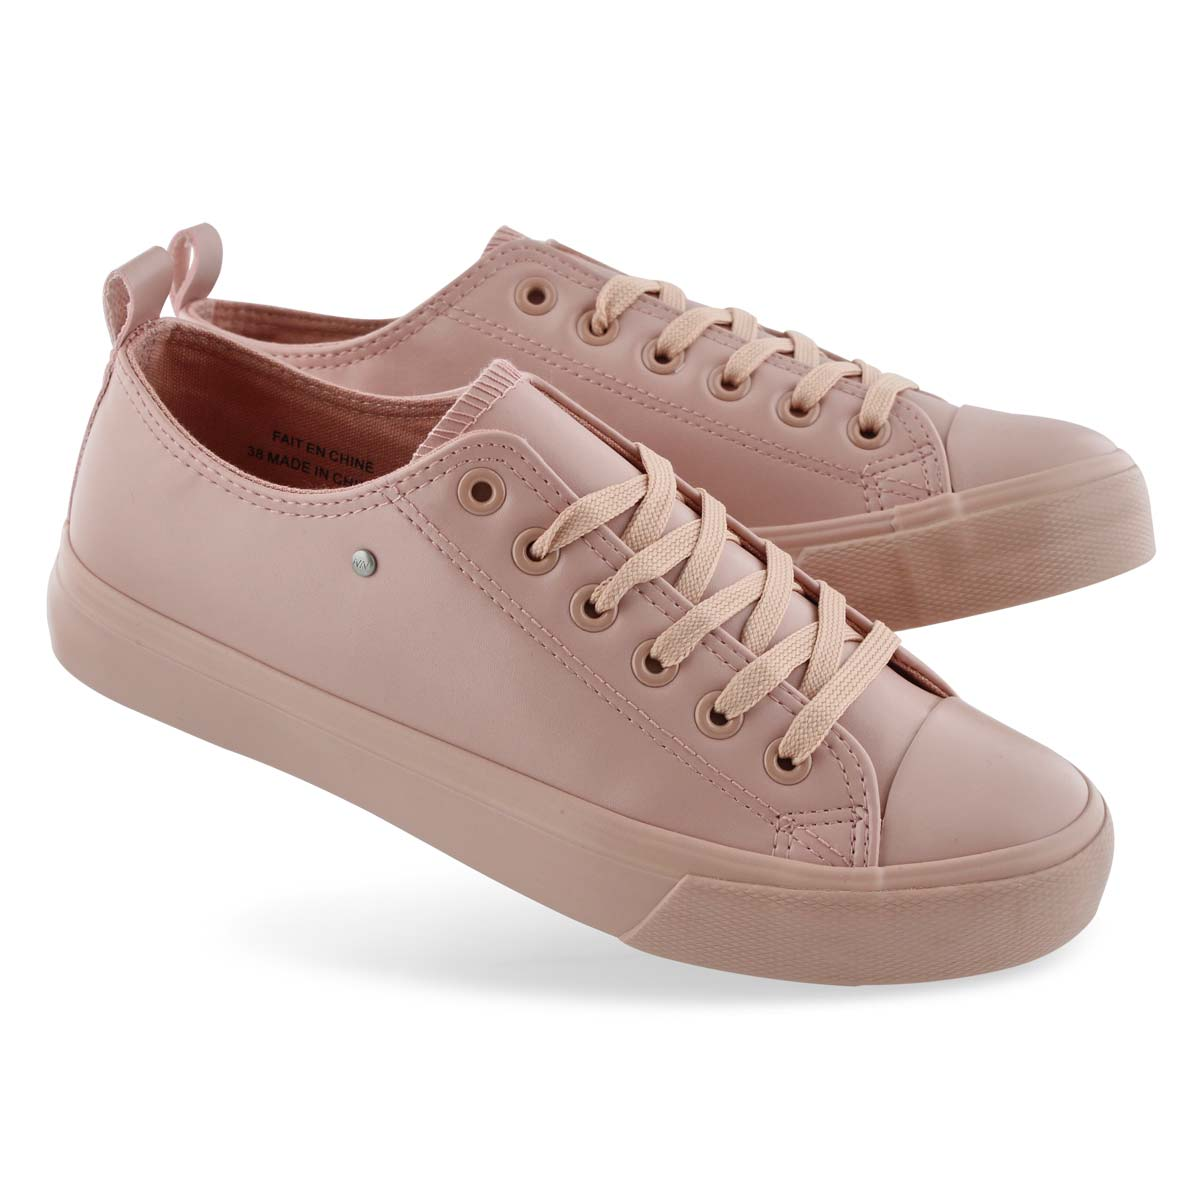 Lds Hazel lily vegan lace up sneaker